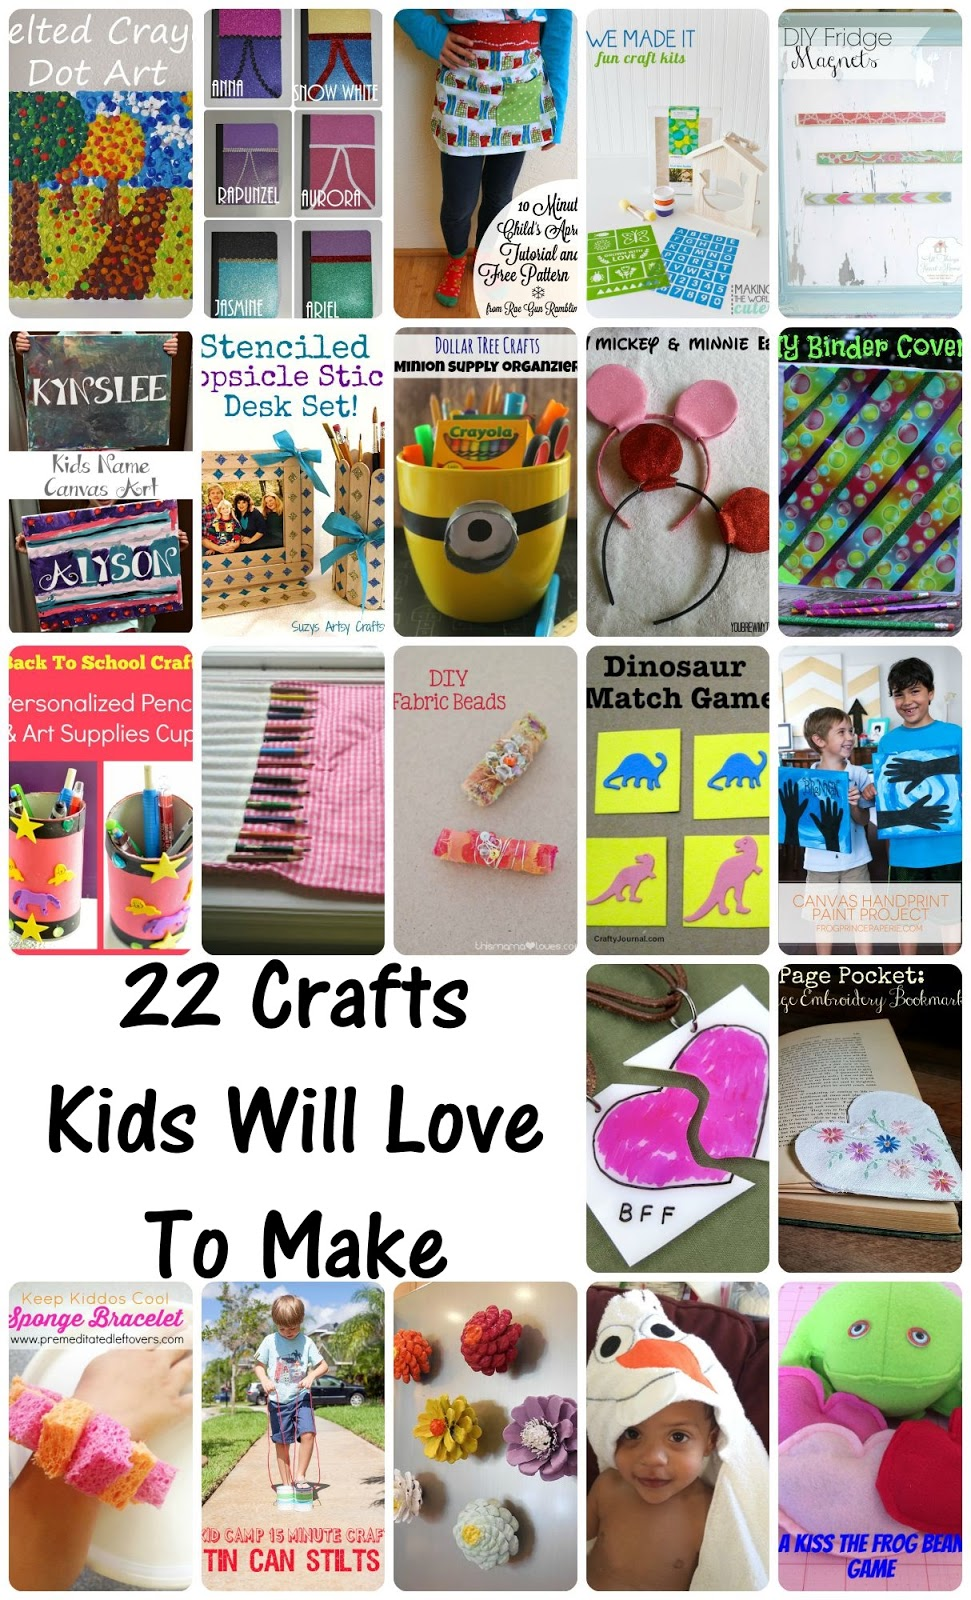 Crafts Kids Will Love. Great collection of activities to do with children